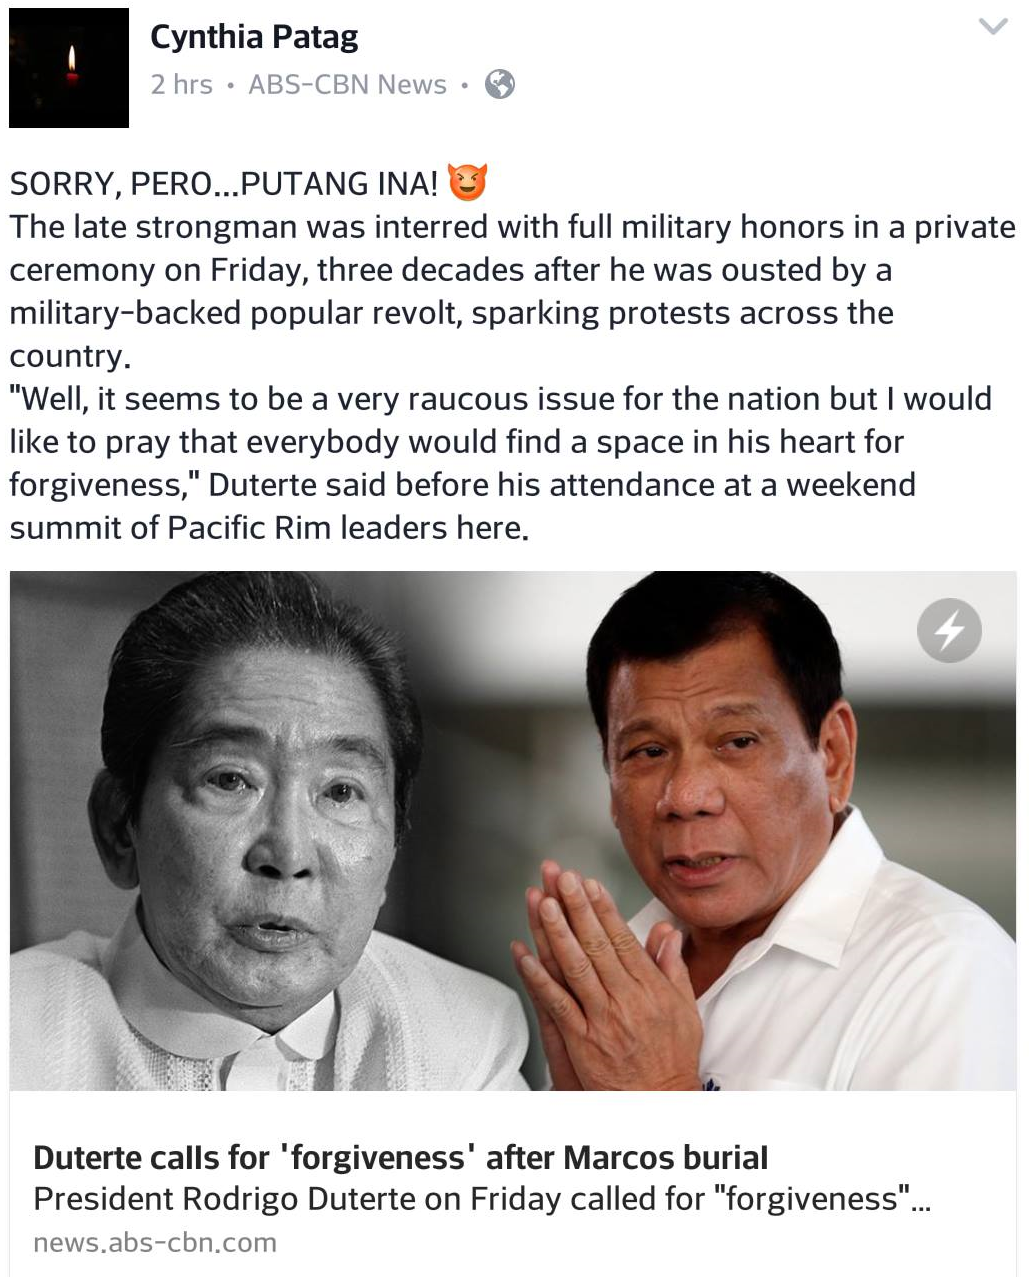 Cynthia Patag curses in response to Duterte praying for forgiveness after Marcos burial